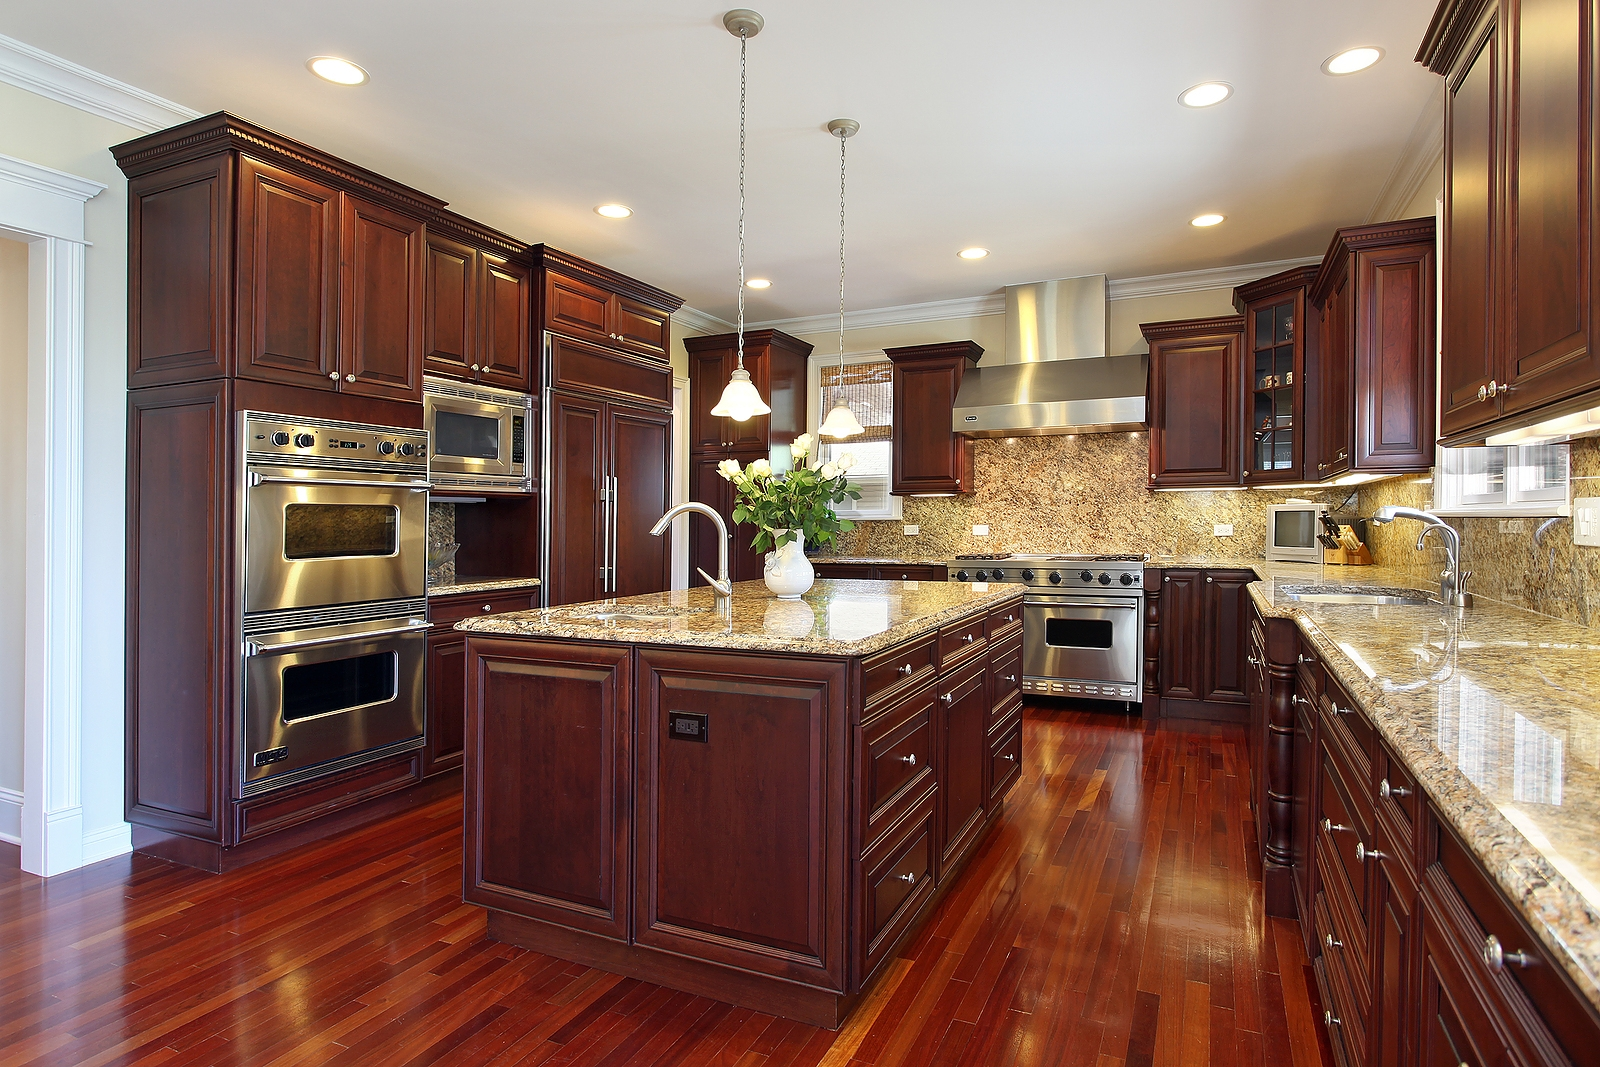 Cherry Wood Cabinets For Kitchen1600 X 1067